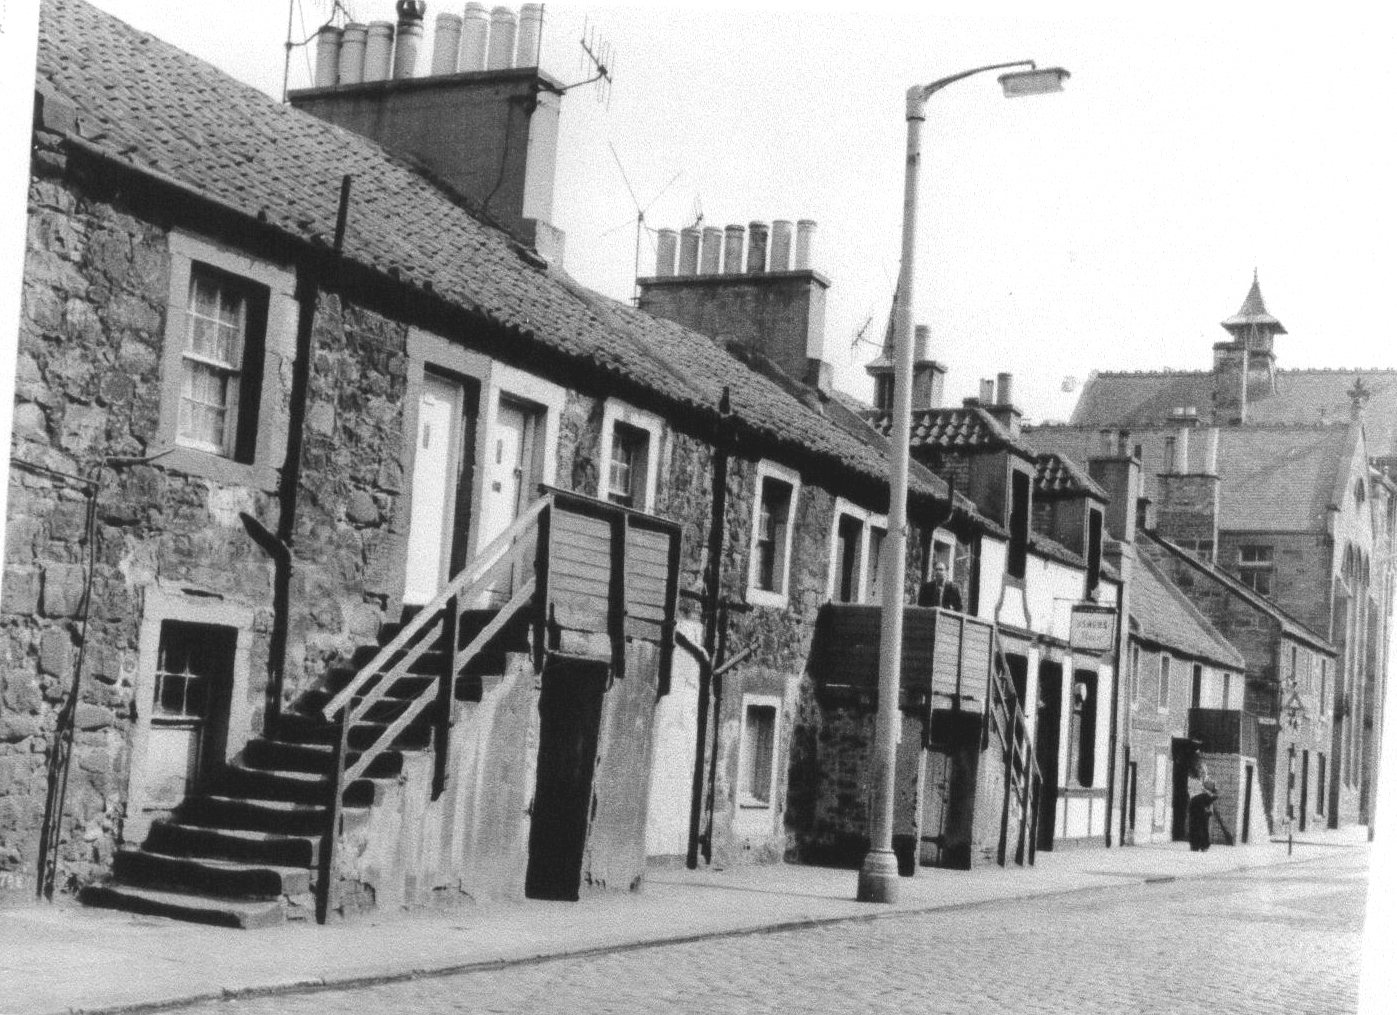 Newhaven Village, October 1967